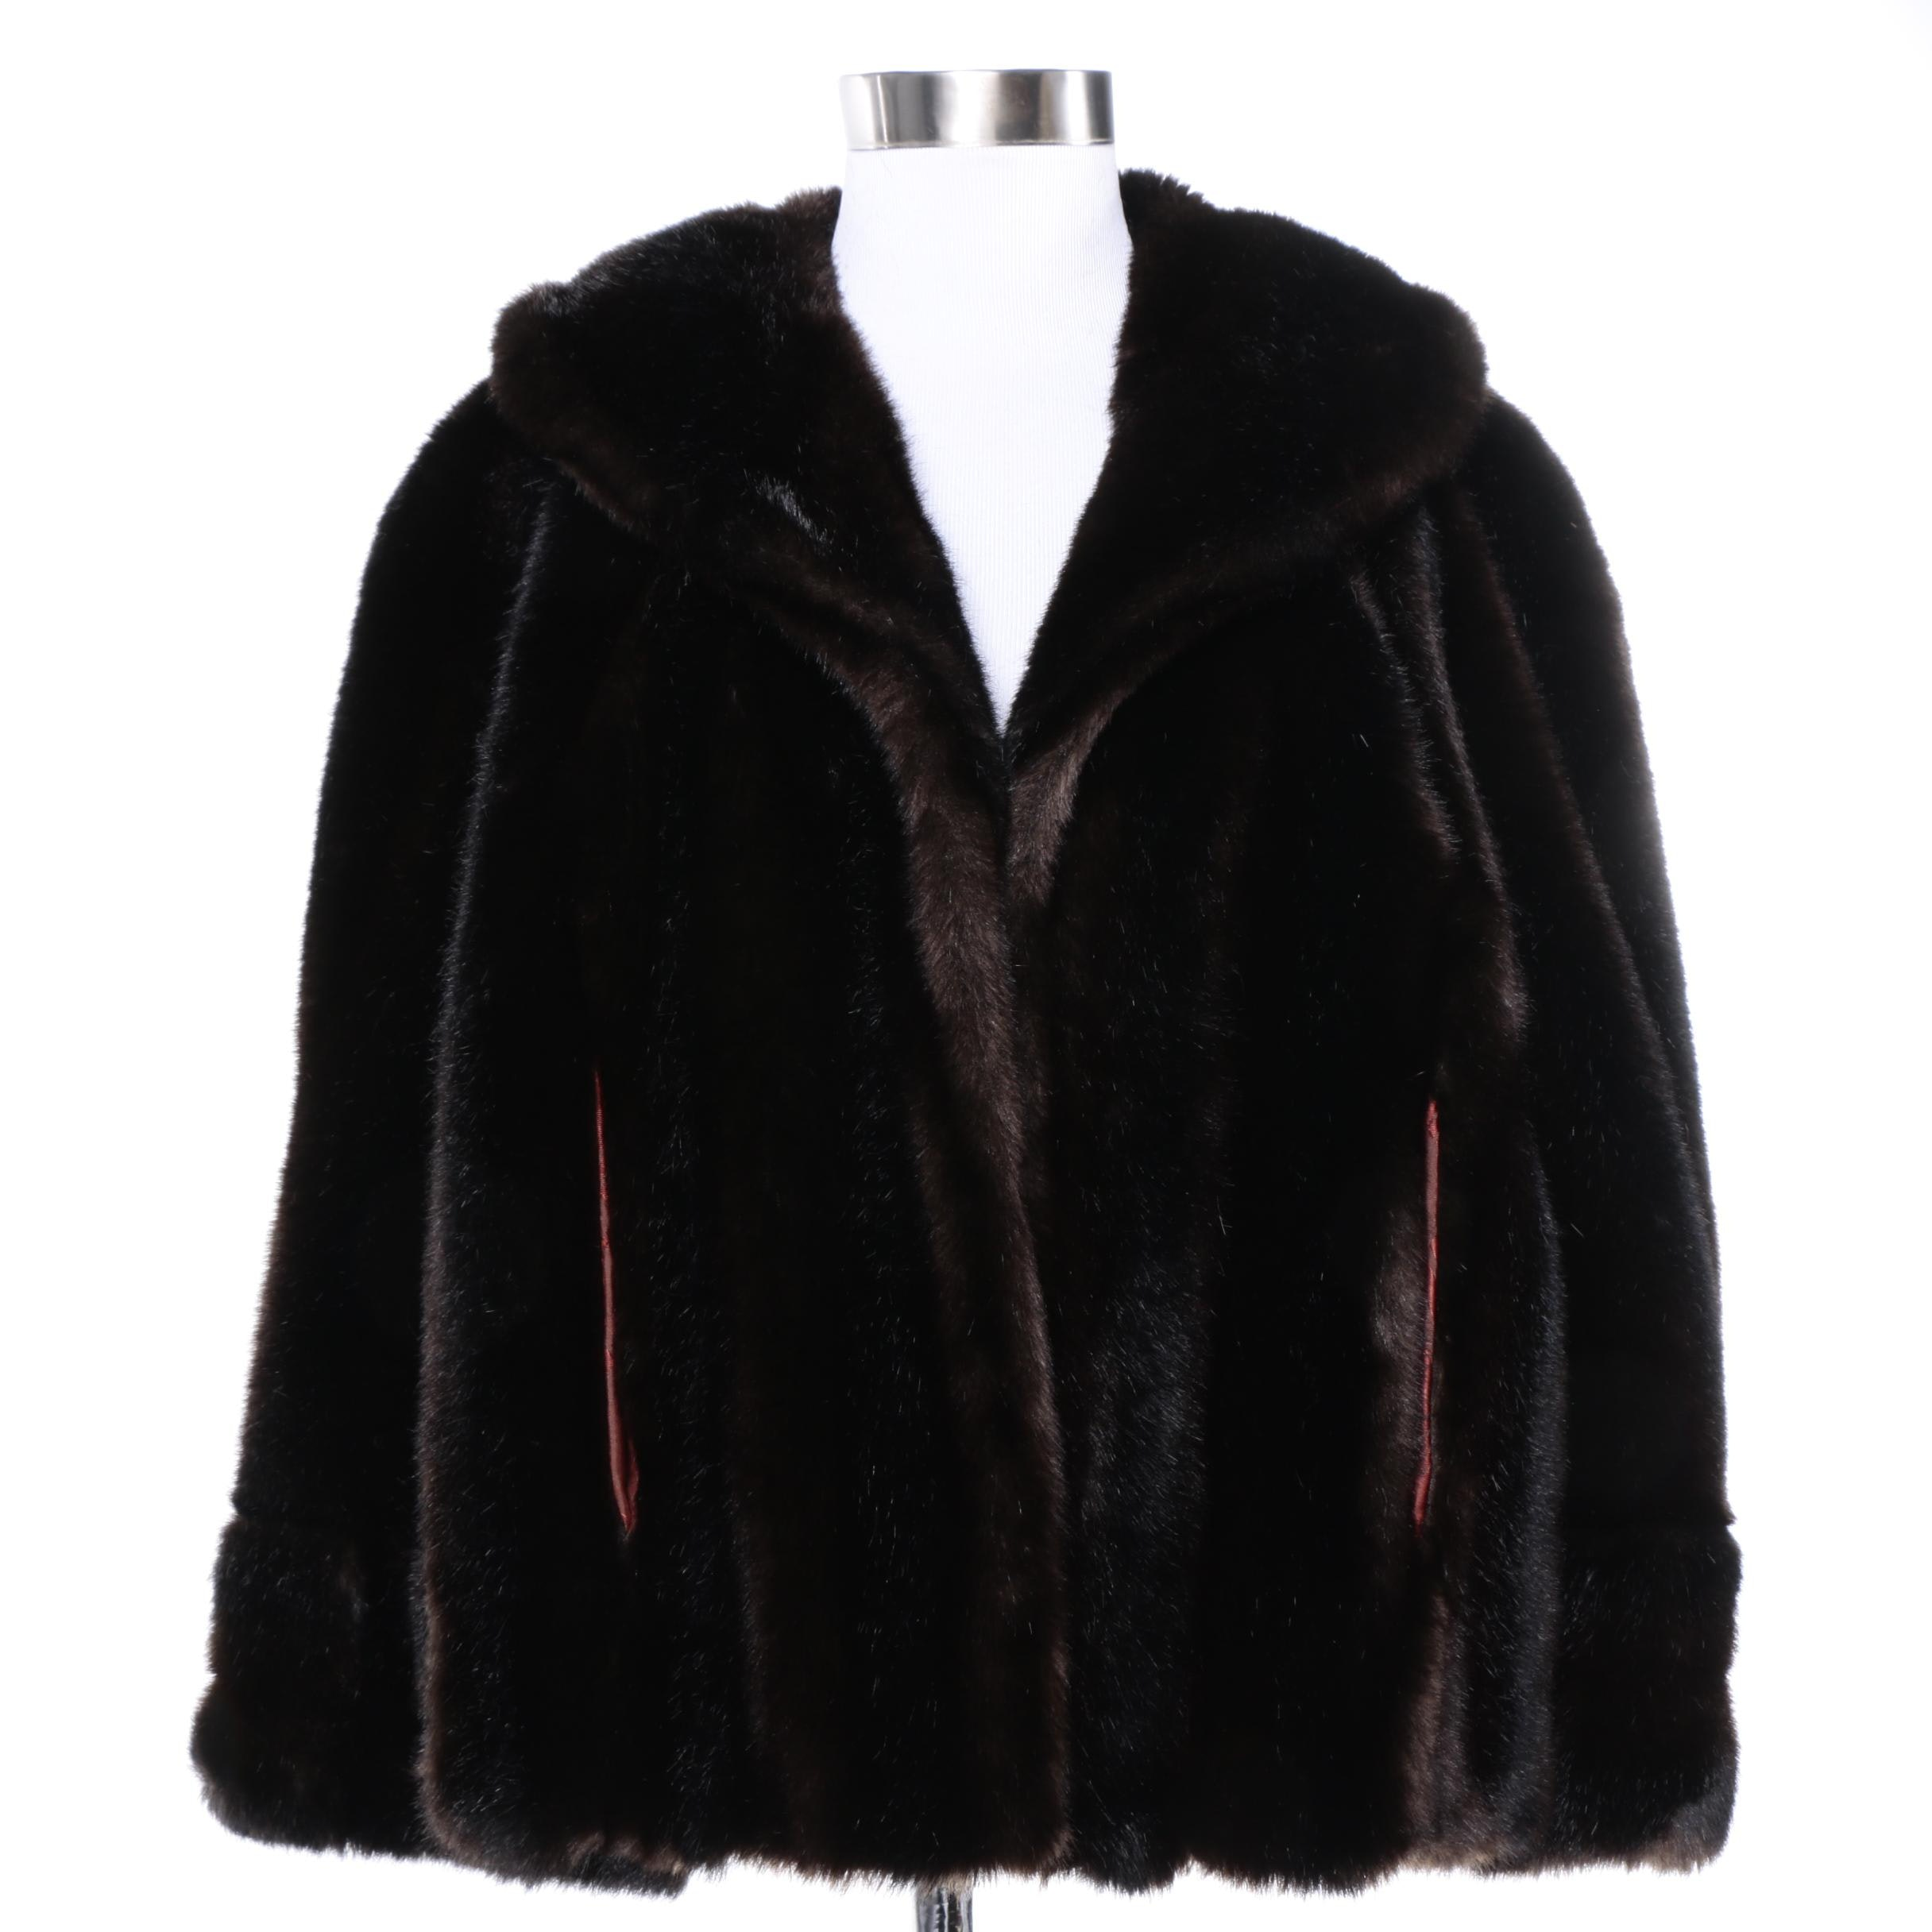 Vintage Faux Fur Capelet with Shawl Collar